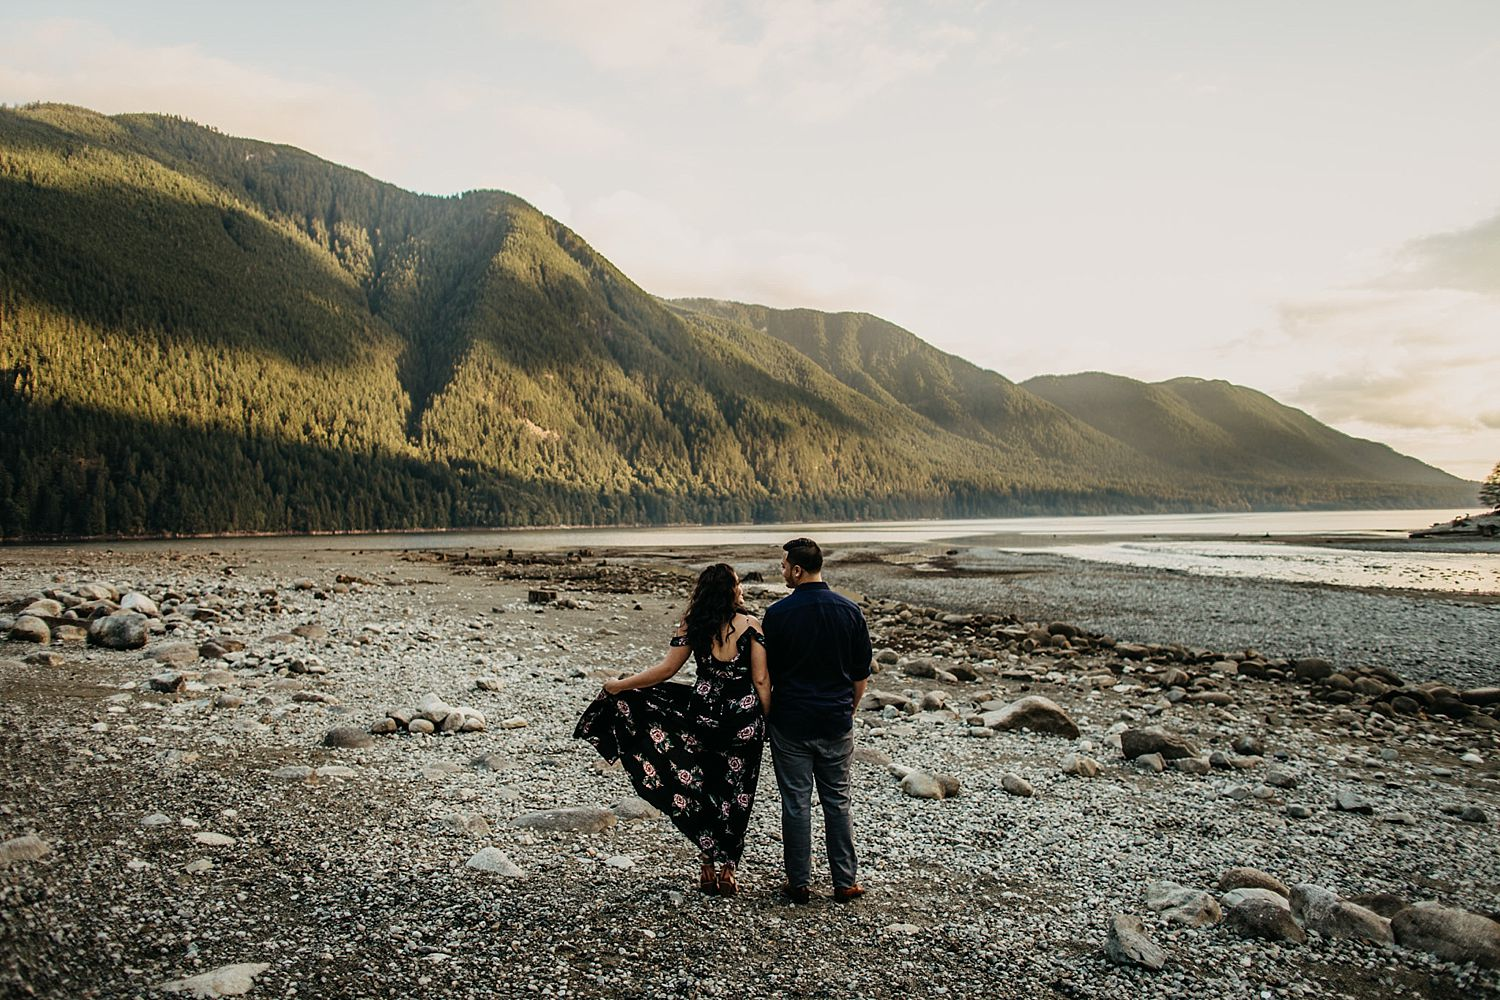 Copy of couple standing on beach alouette lake dress flowing in wind